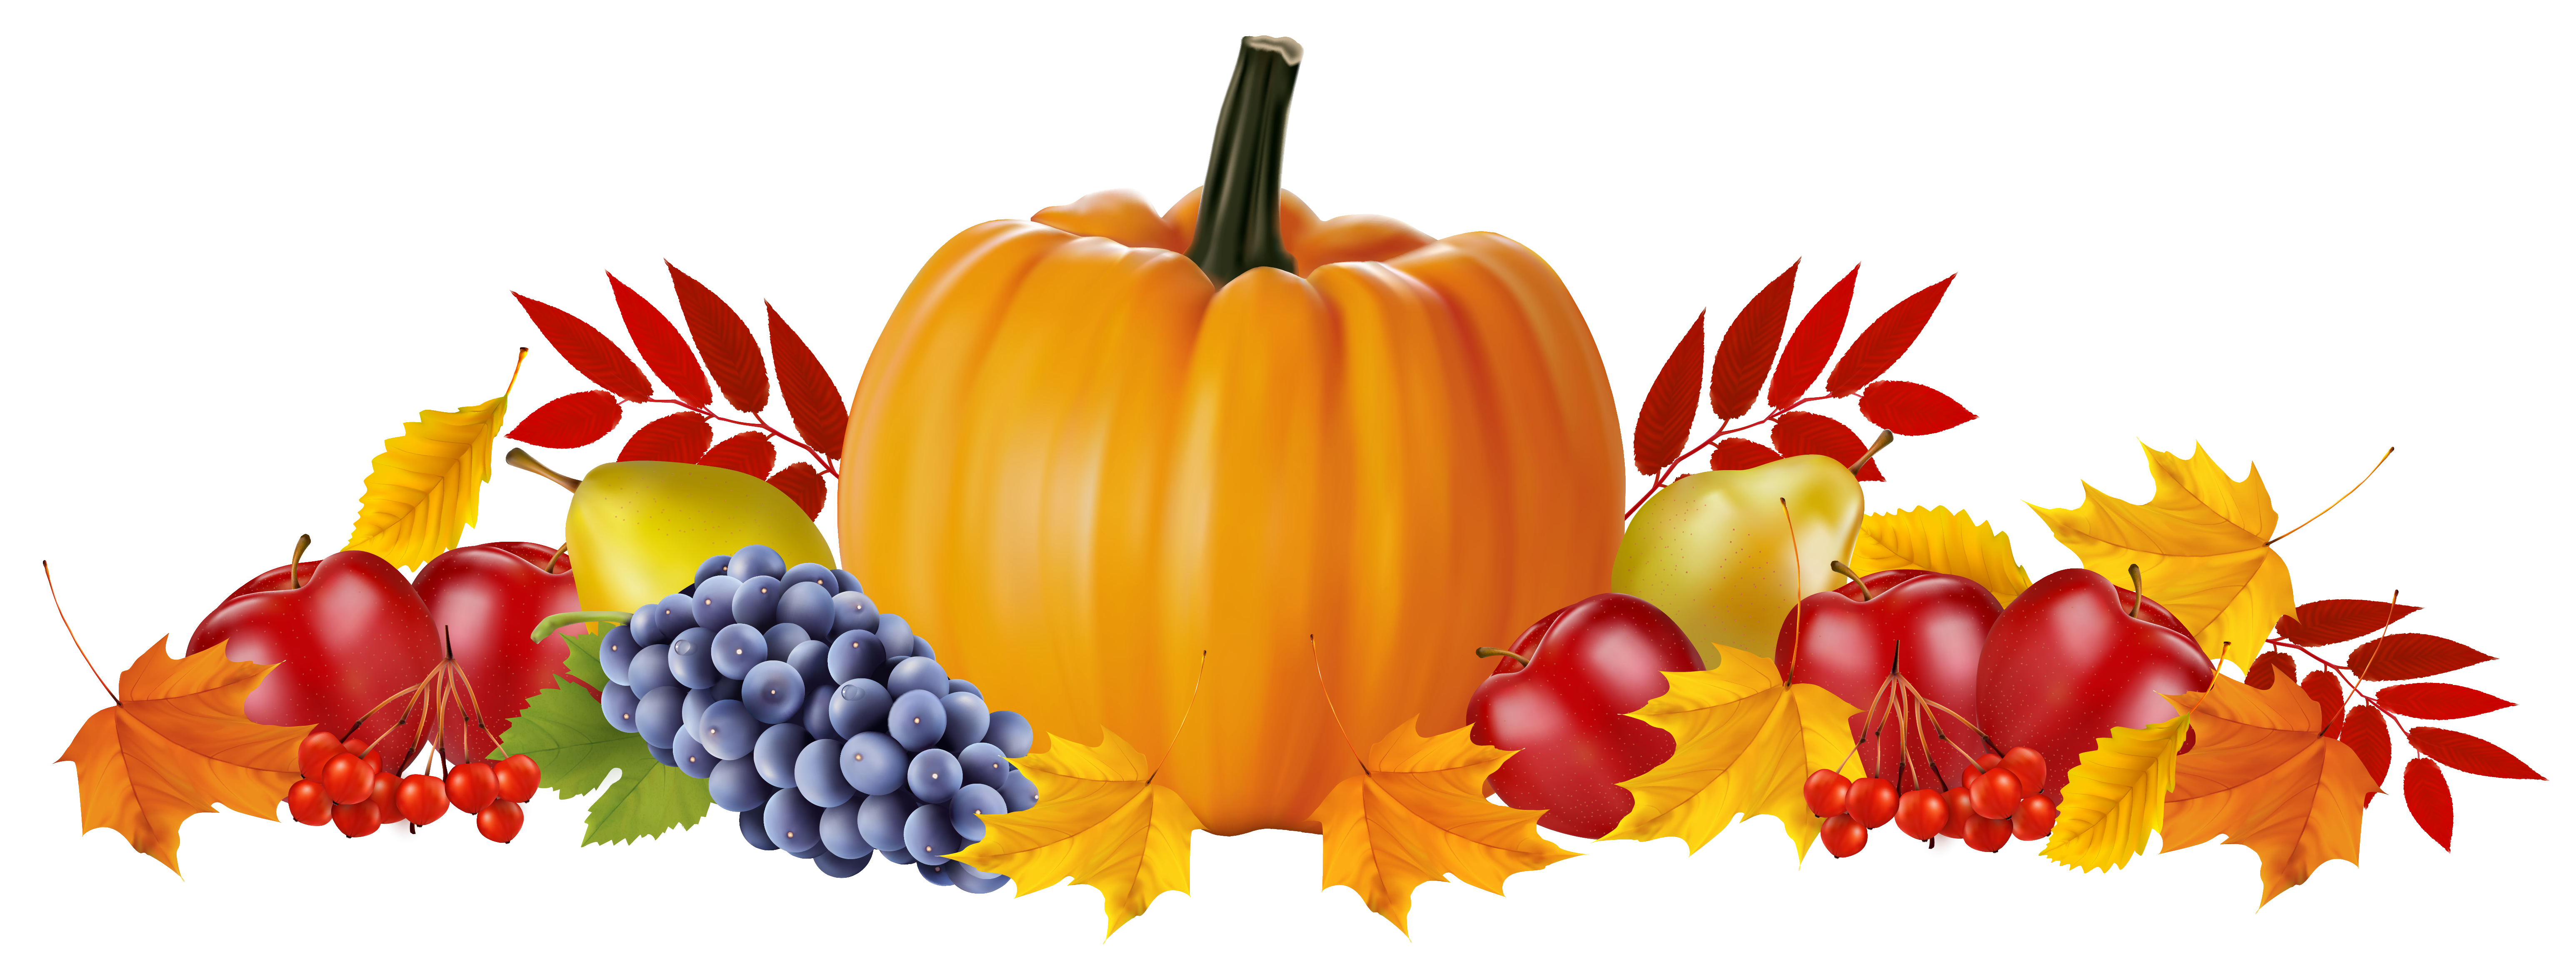 Autumn and leaves image. Fruits clipart png vector